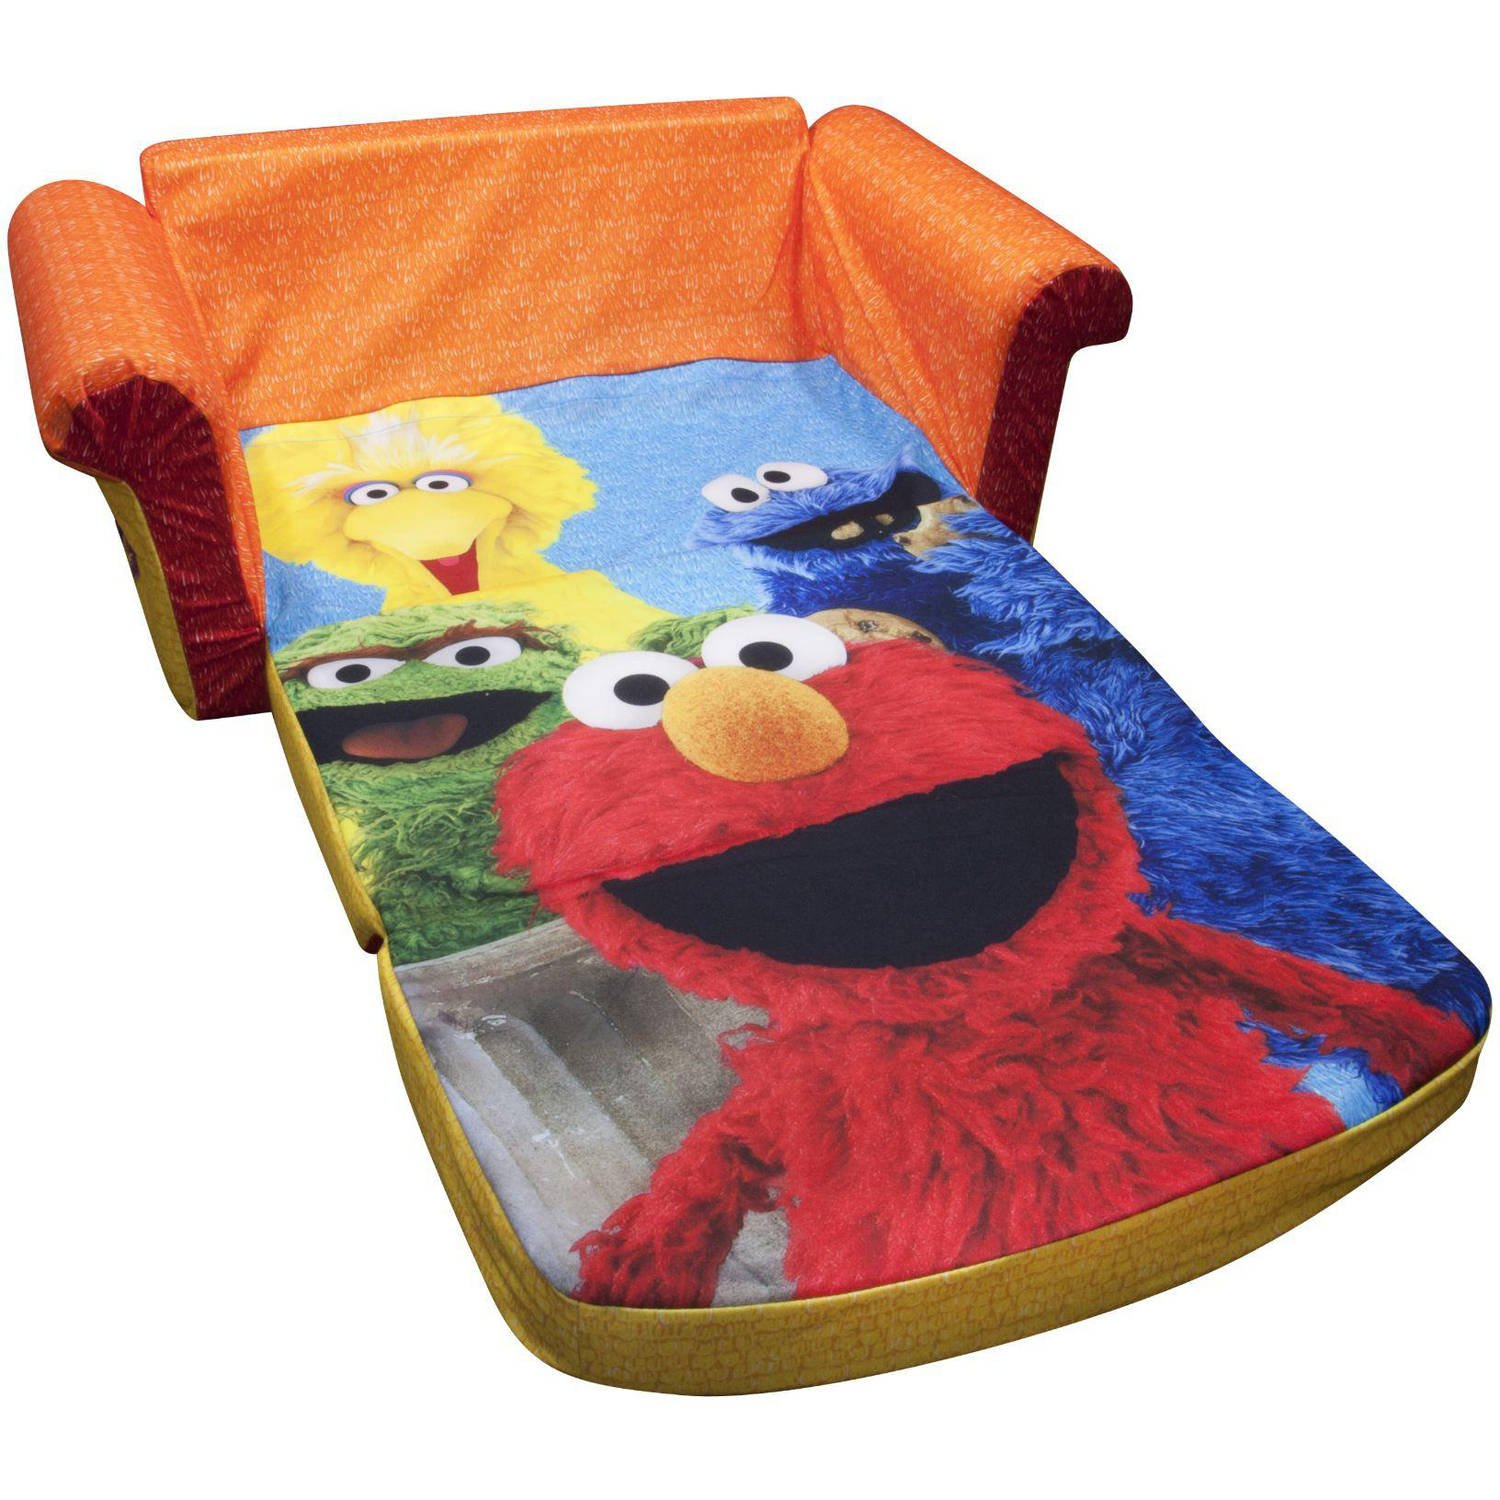 Lovely Amazon.com: Marshmallow 2 In 1 Flip Open Sofa, Sesame Streetu0027s Elmo:  Kitchen U0026 Dining